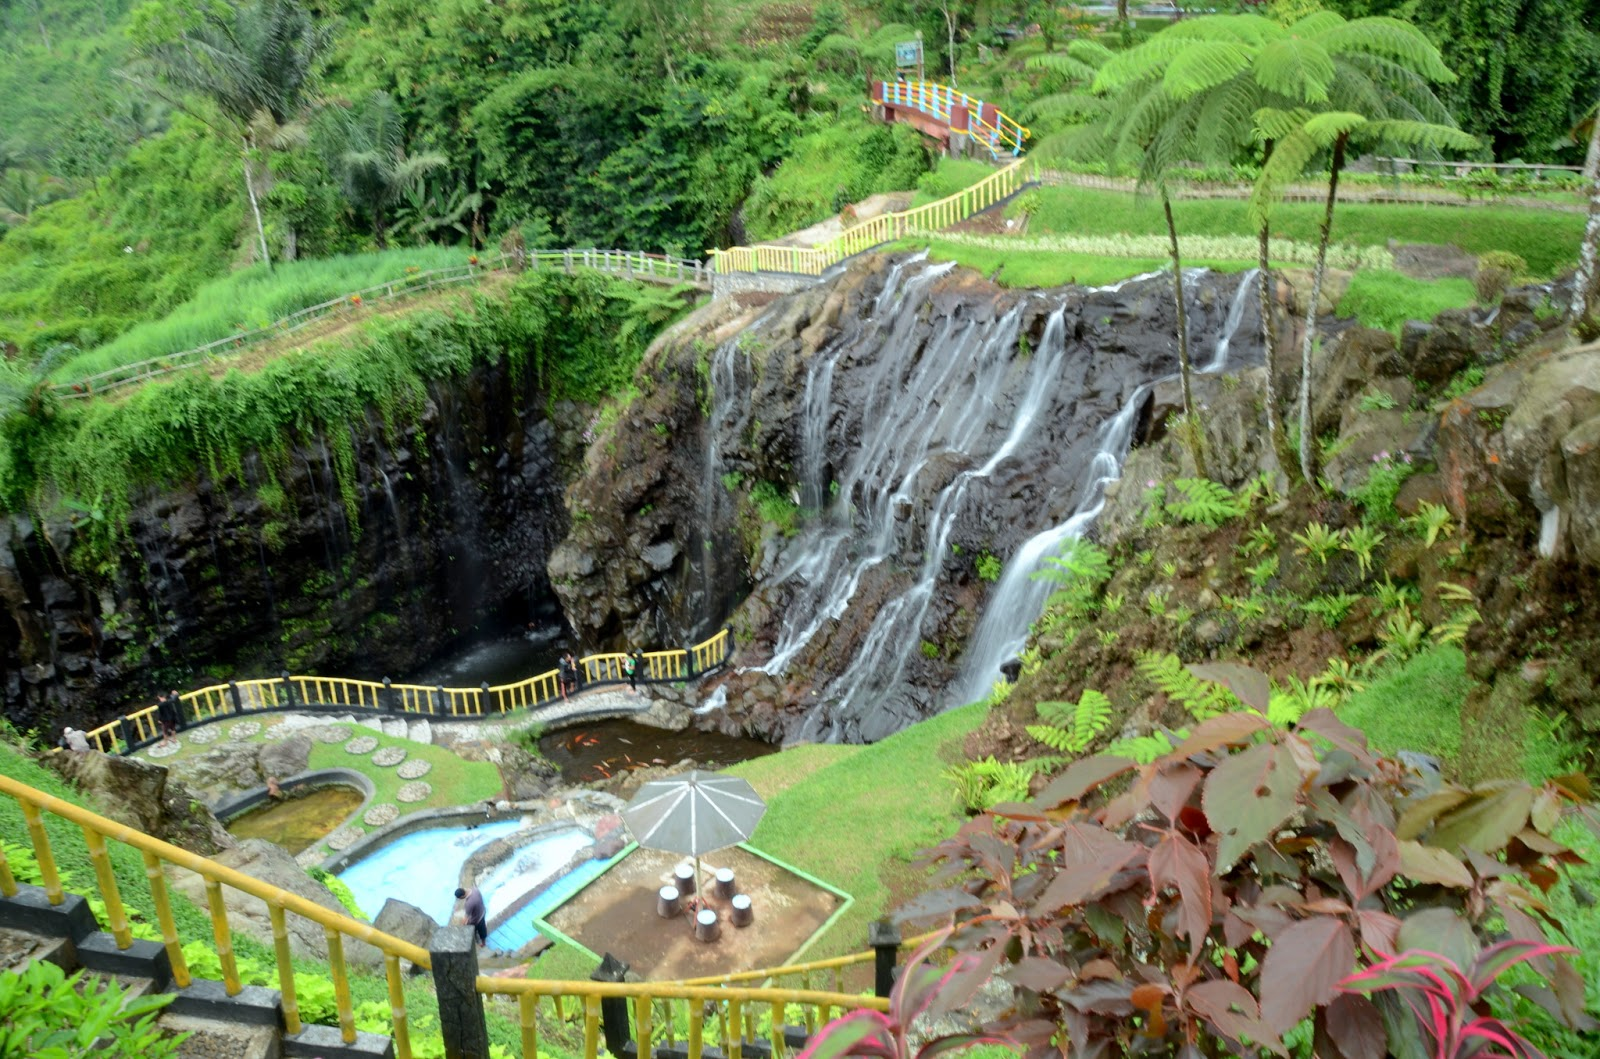 Purwokerto Indonesia  City new picture : Purwokerto Jawa Tengah Indonesia Purwokerto Jawa Tengah